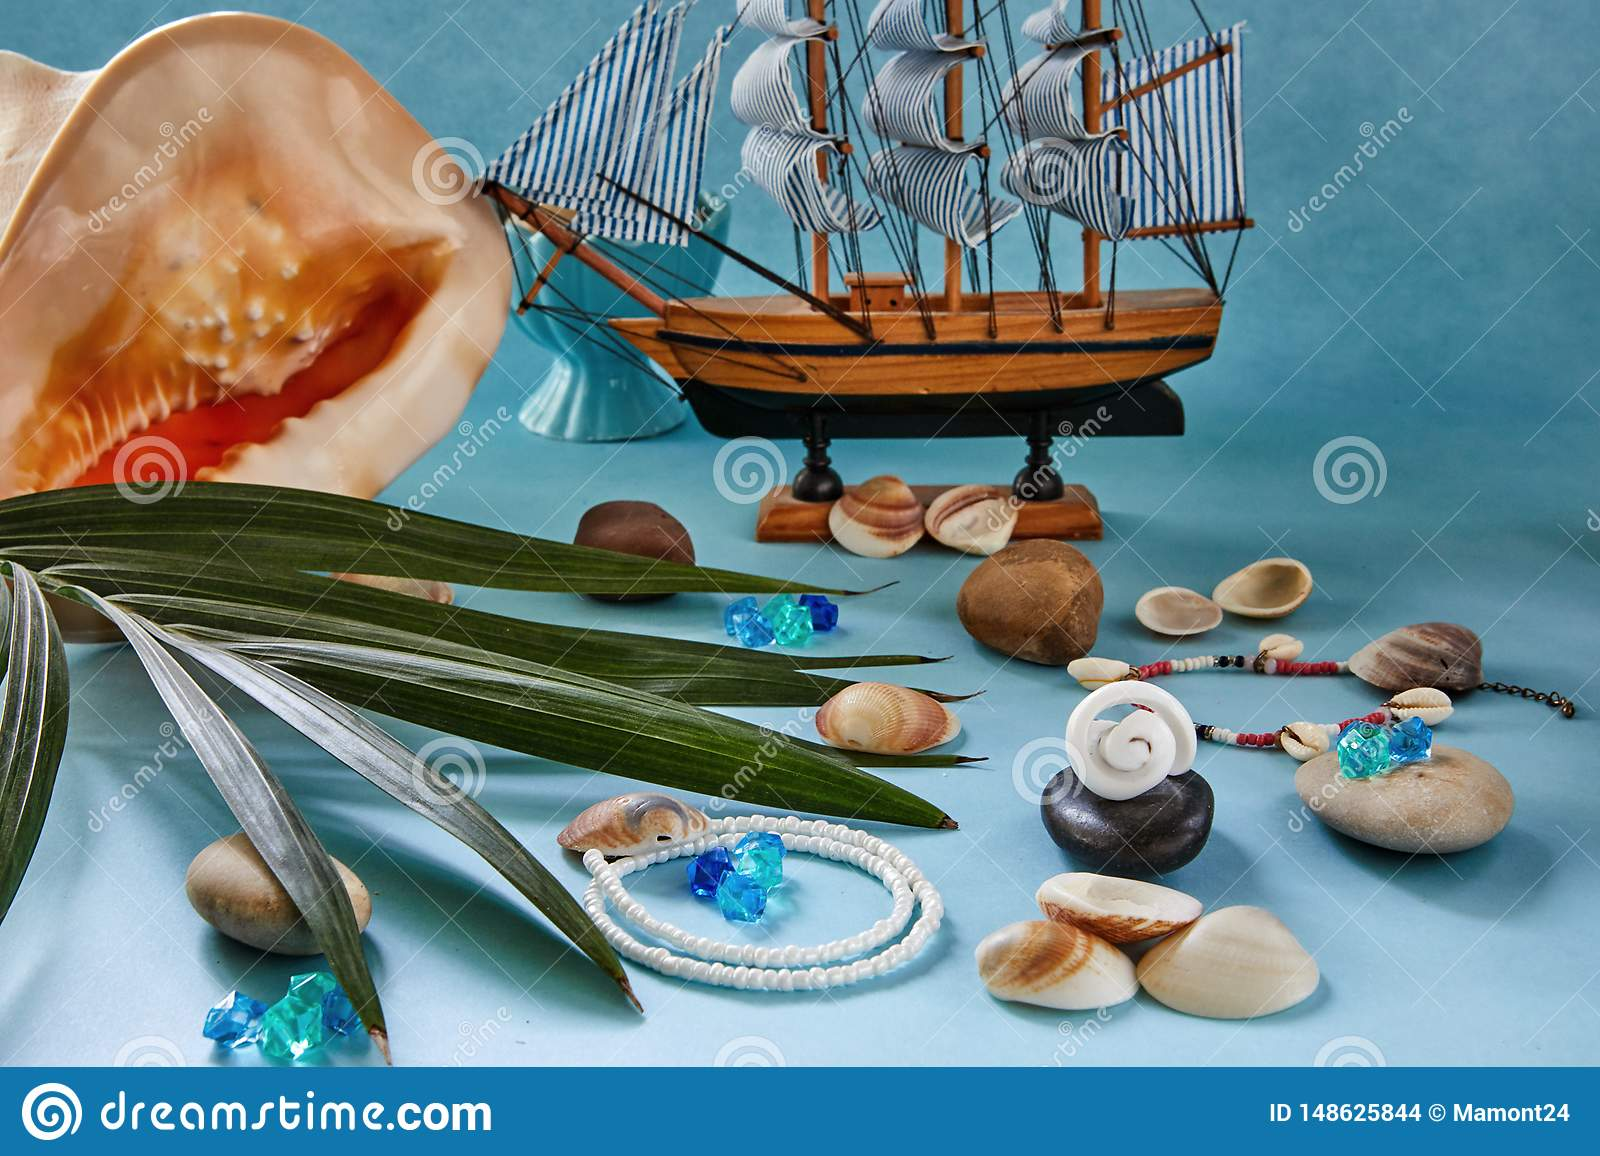 Beach accessories, seashells and boat on a blue background